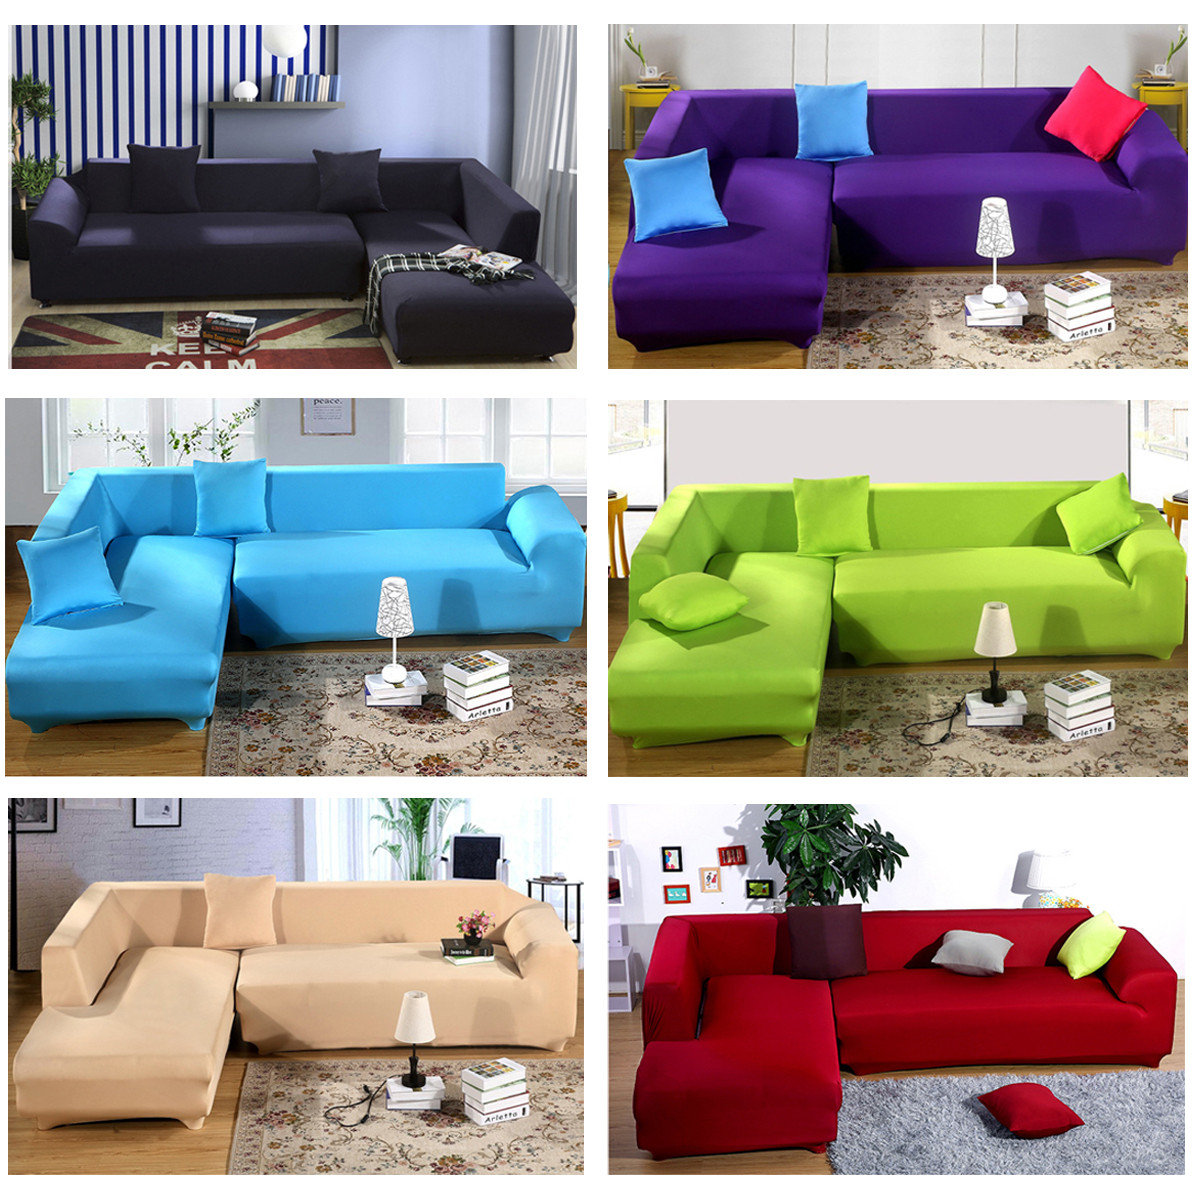 4 seater solid colors nylon strench elastic sofa couch cover rh newchic com